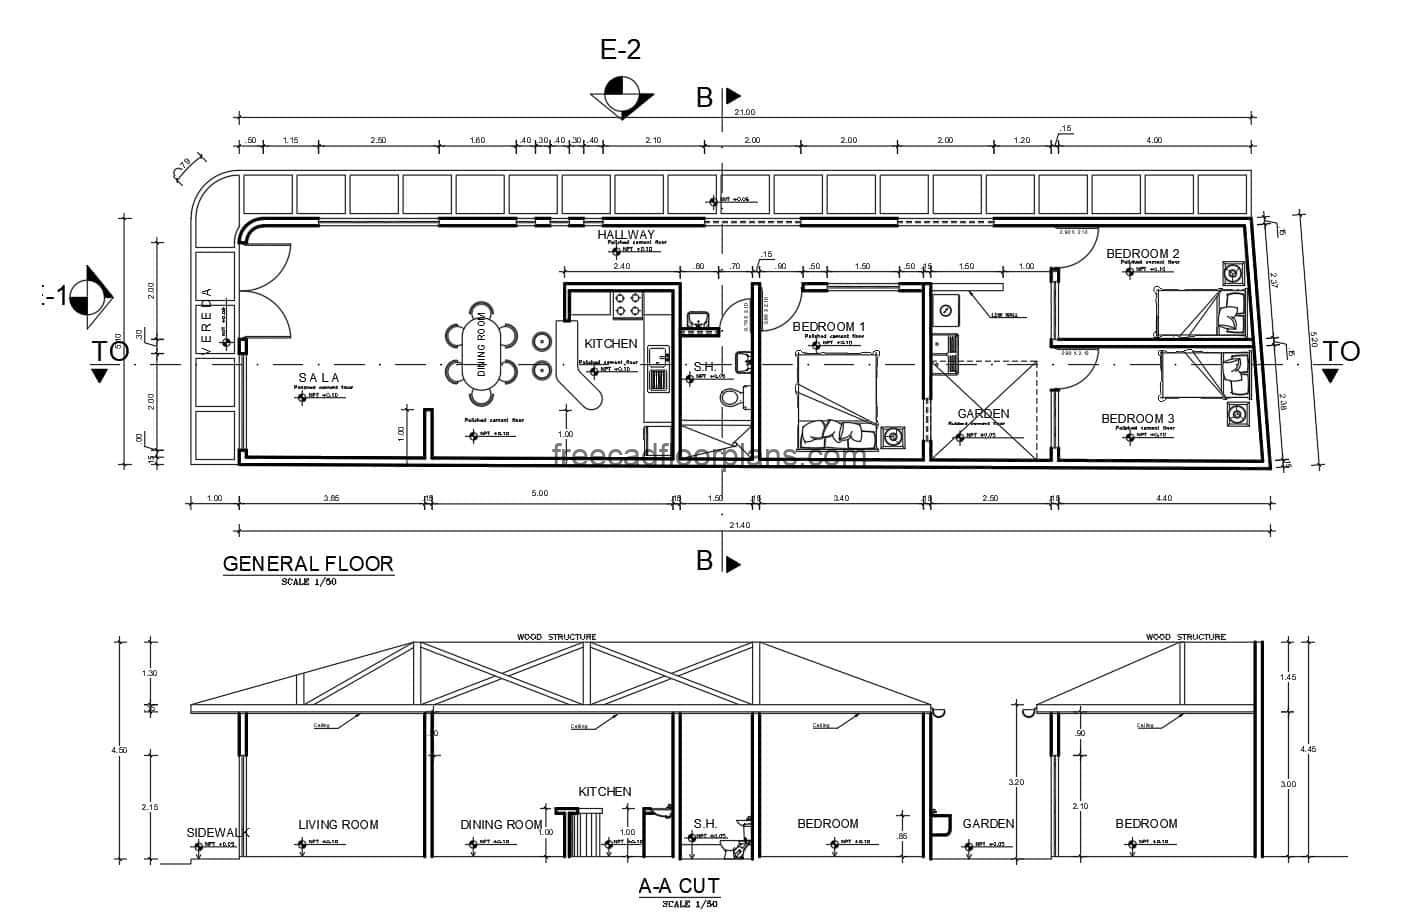 Single-family dwelling inclined roof project of complete plans in dwg format, foundation plan, architectural distribution, electrical plans, sanitary, elevations, sections, free download.